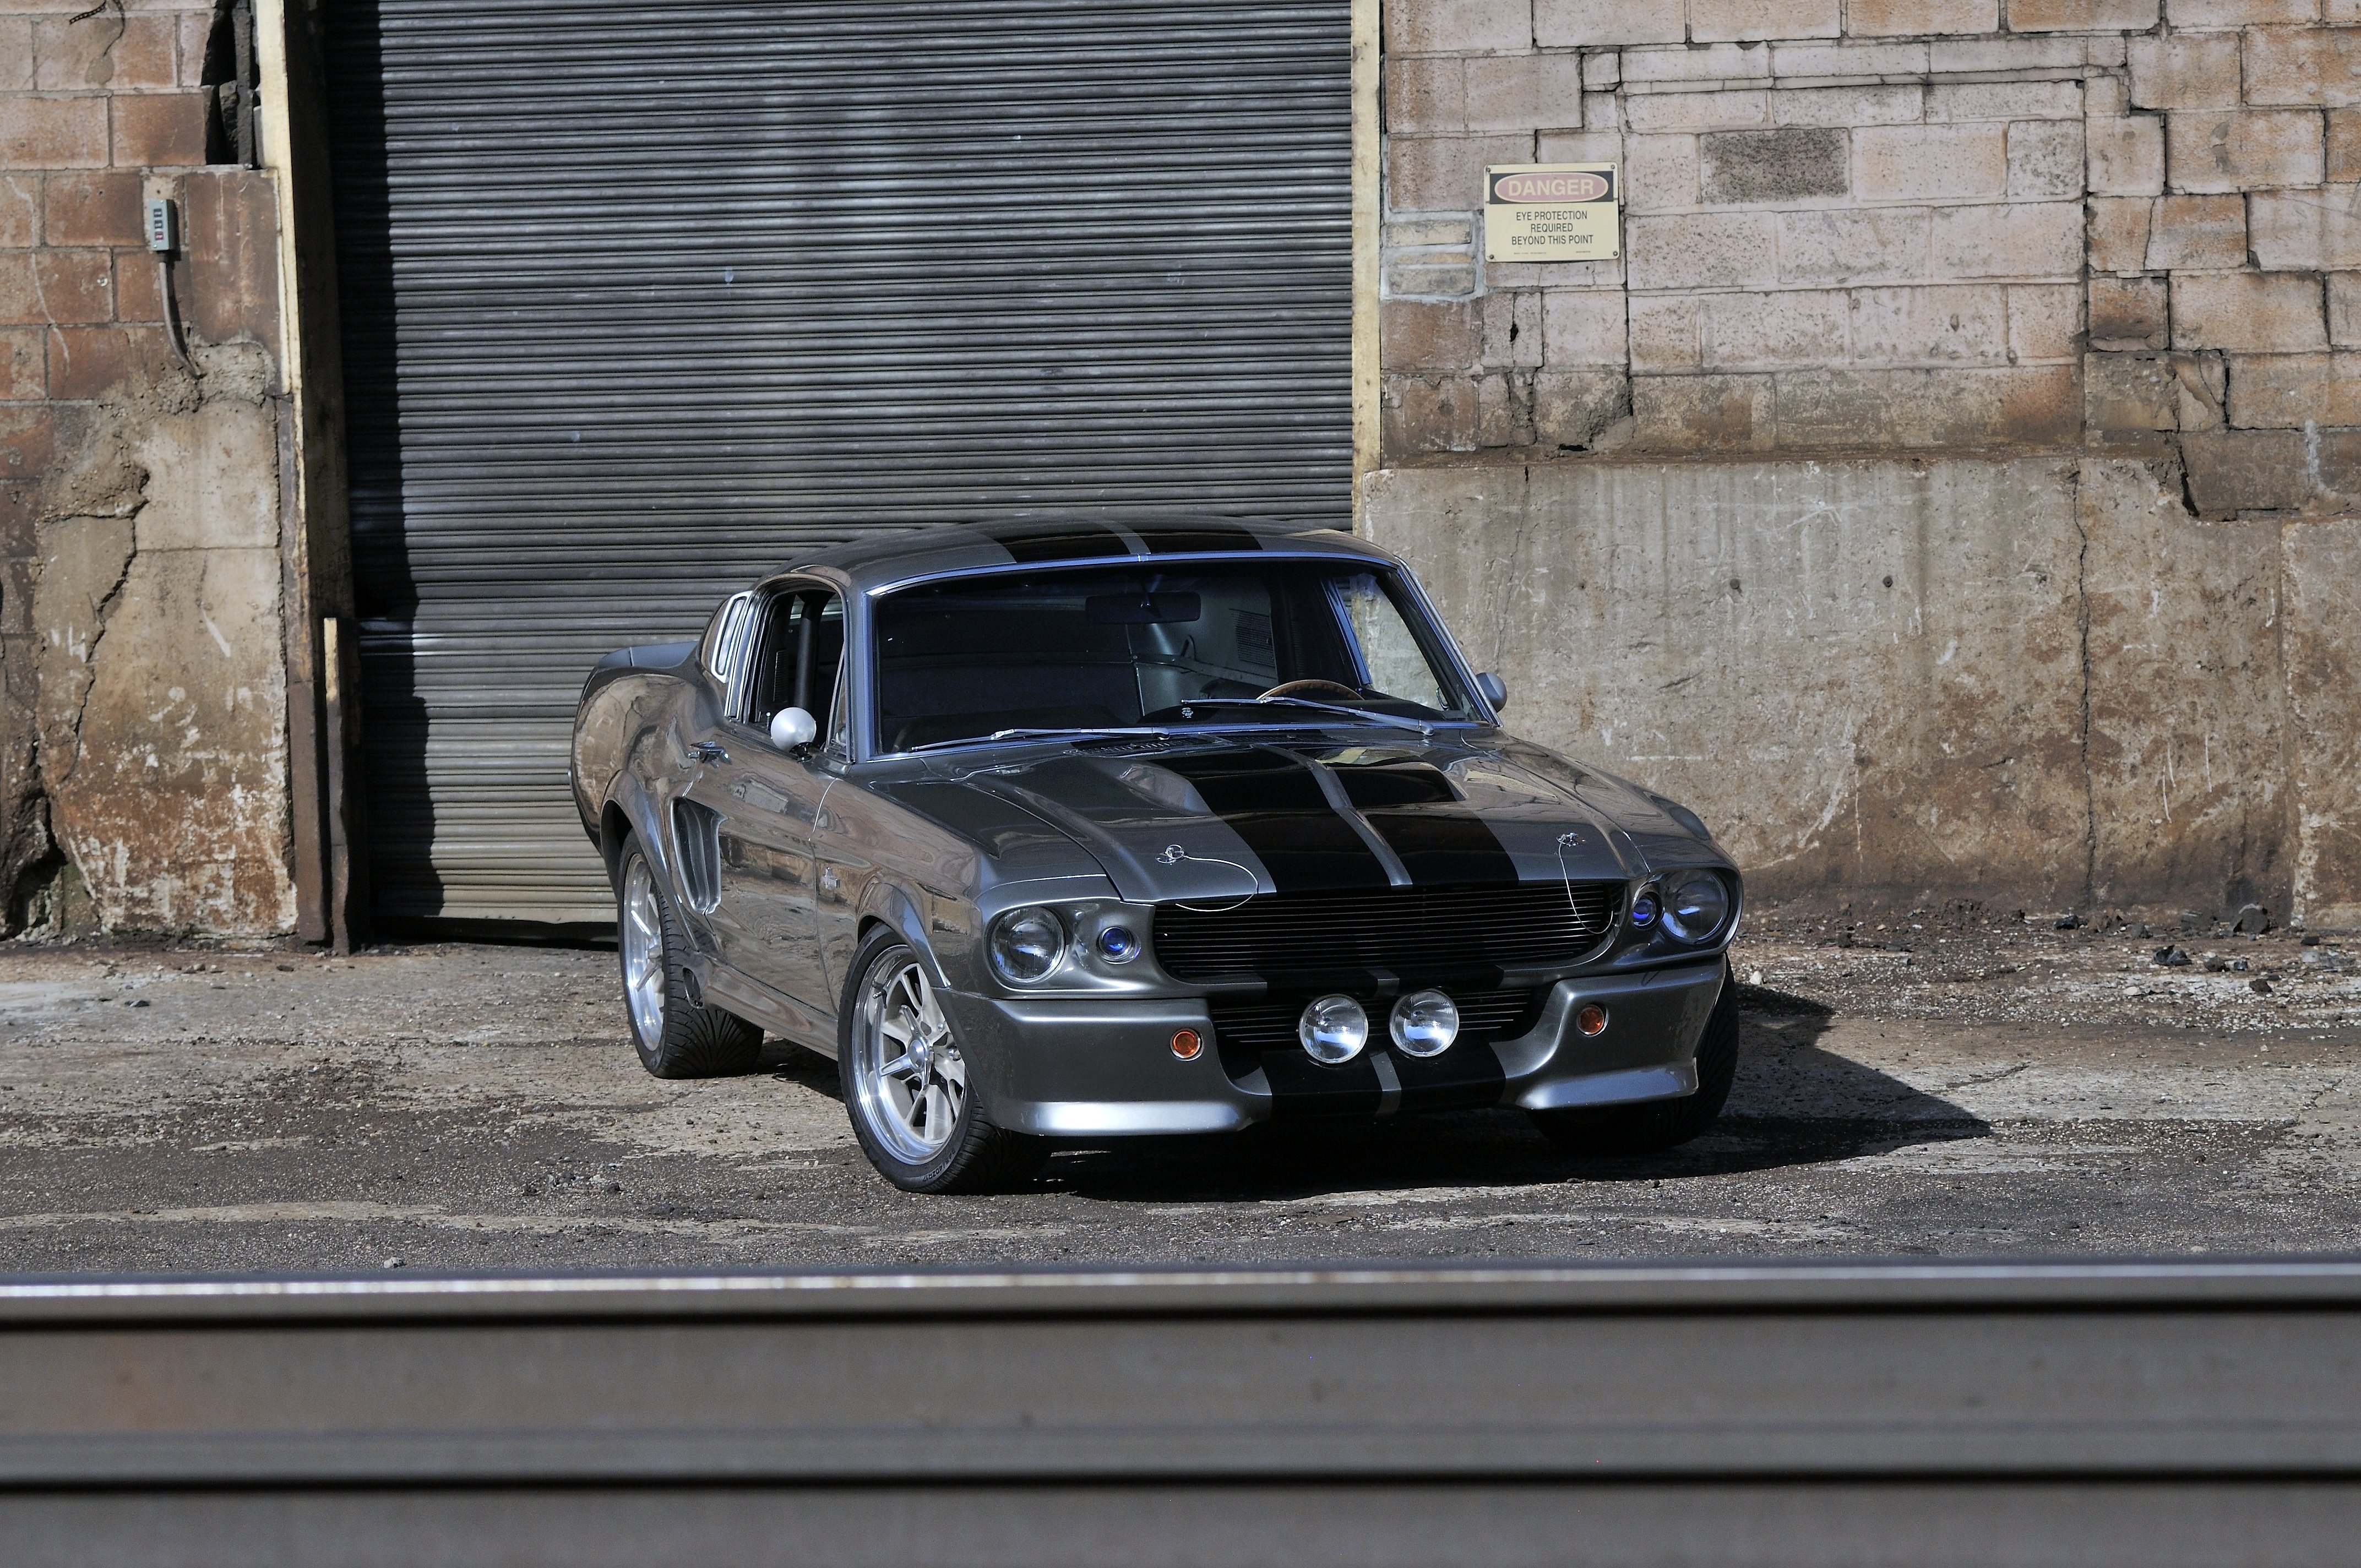 1967 ford mustang shelby gt500 eleanor gone in 60 seconds muscle street rod machine usa 4288x2848 19 wallpaper 4288x2848 653487 wallpaperup - Shelby Mustang Gone In 60 Seconds